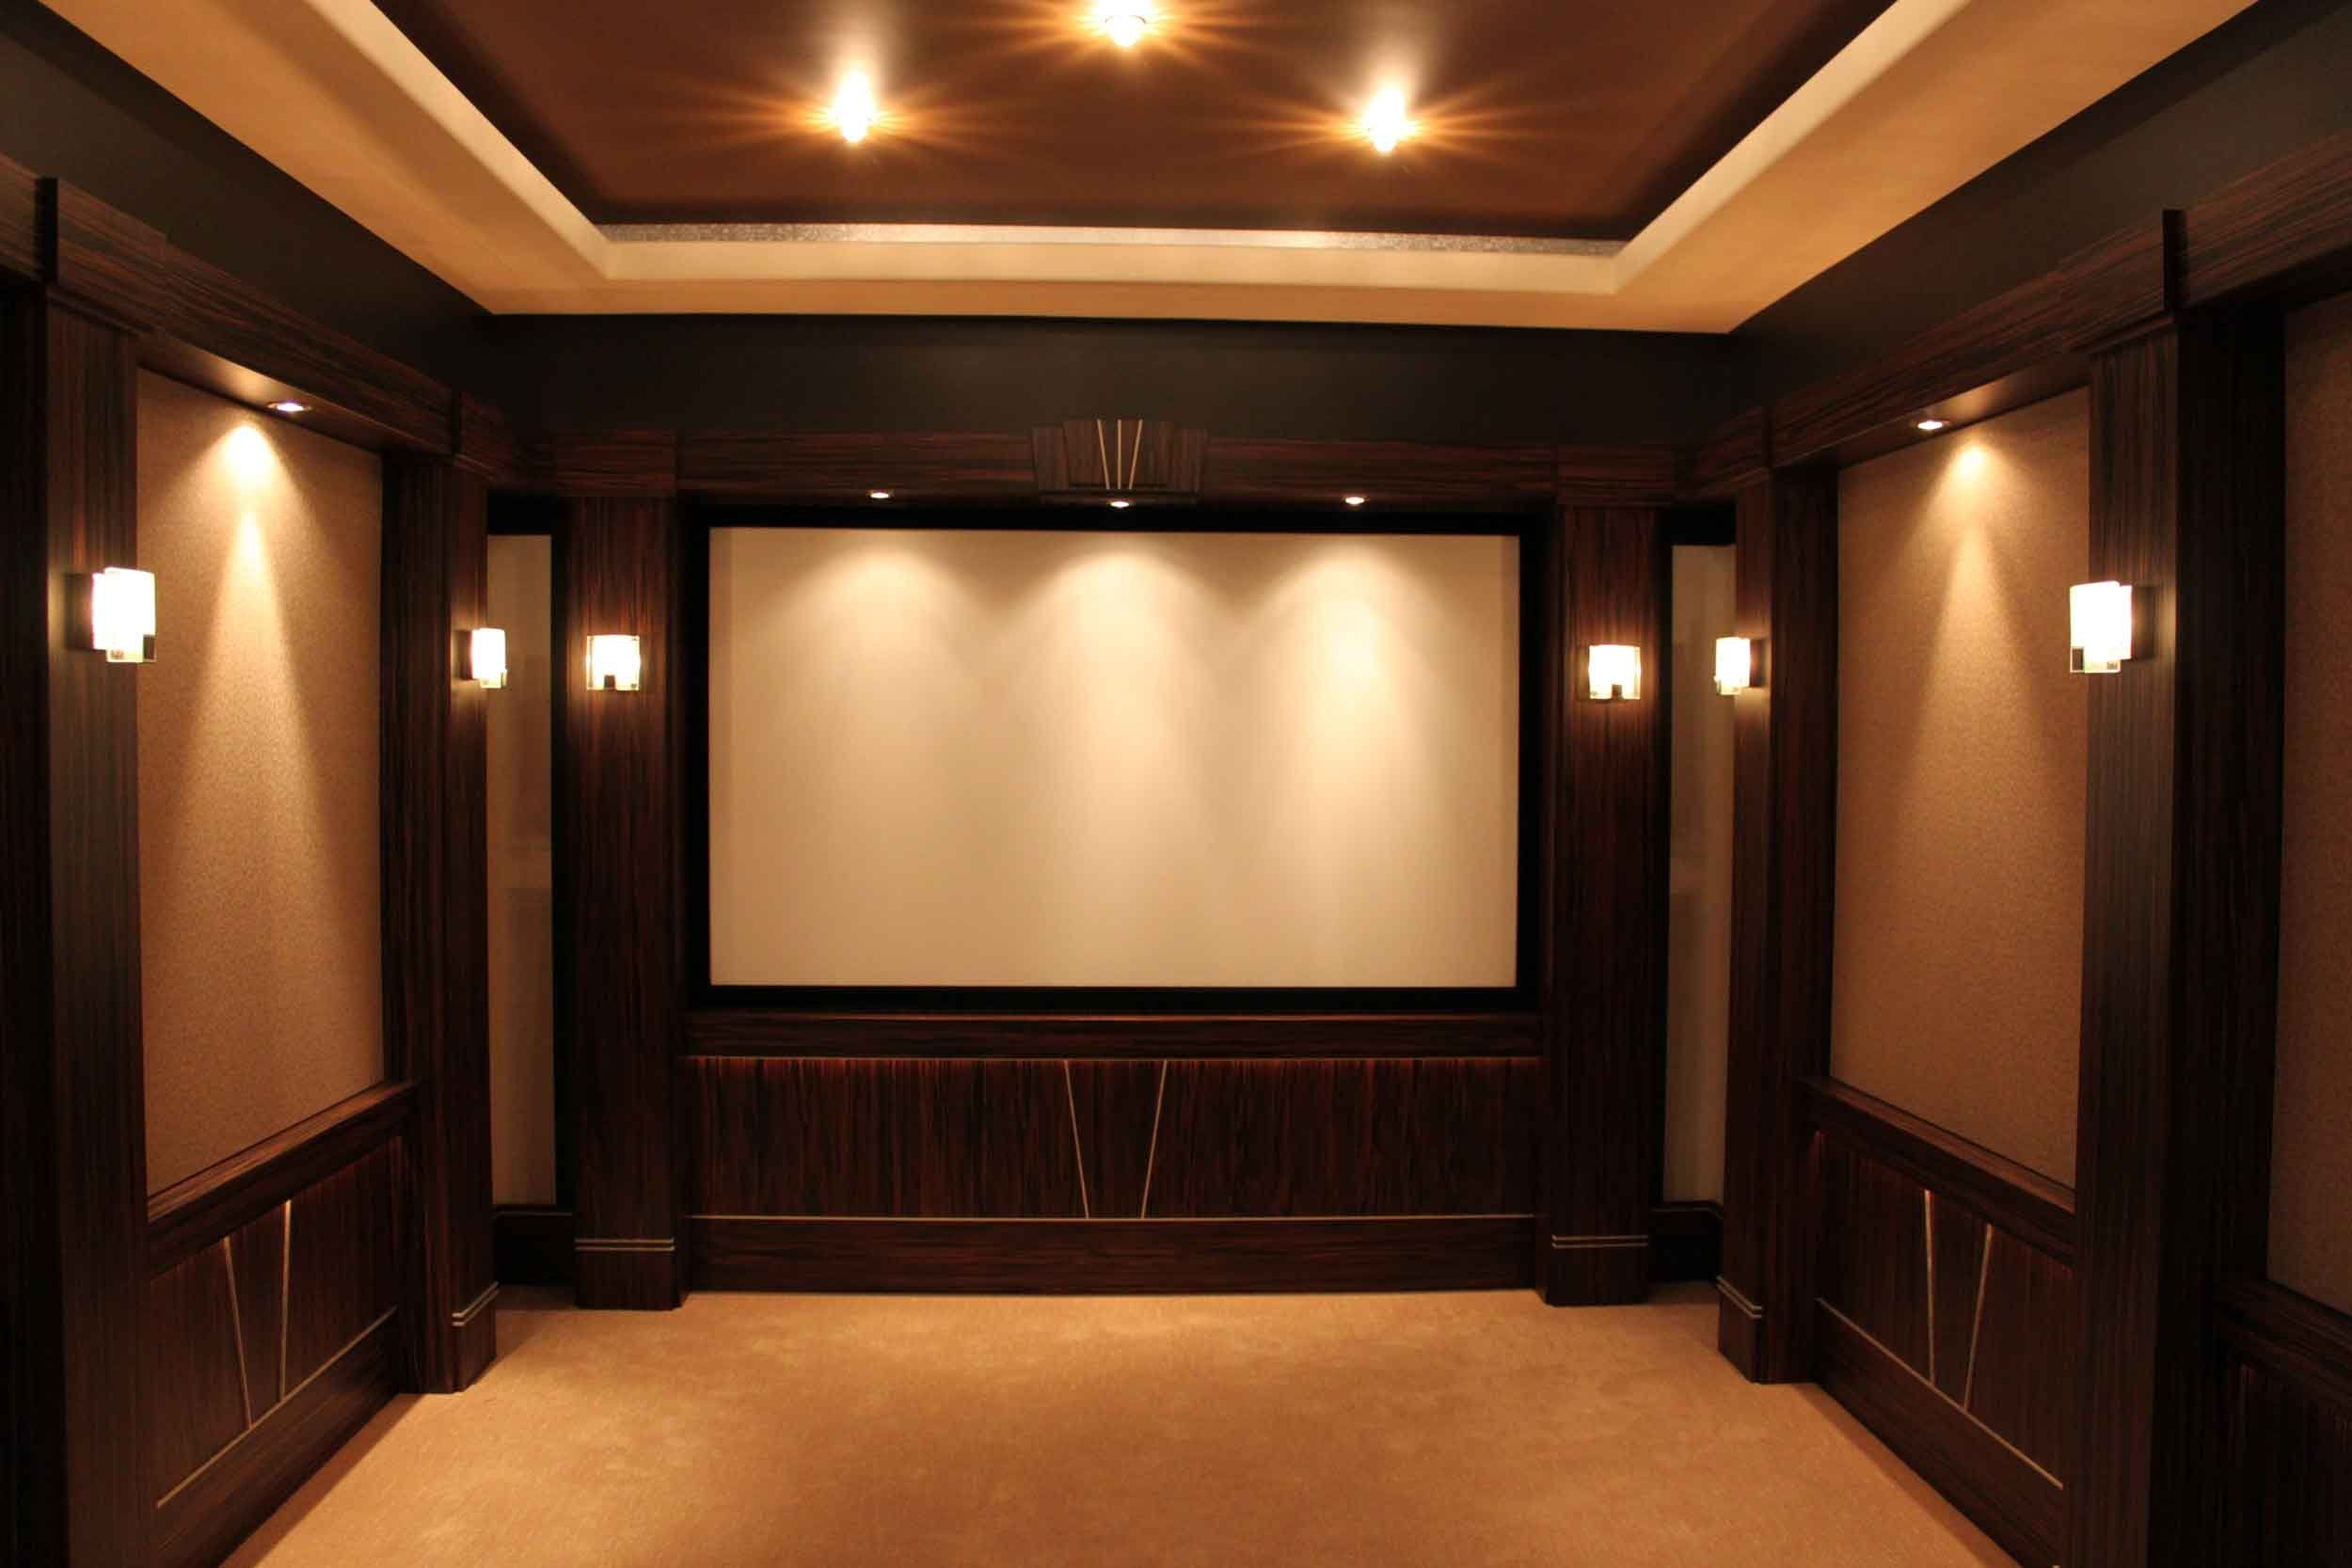 Elite home theater seating cuddle couch - Find This Pin And More On Home Theater Design